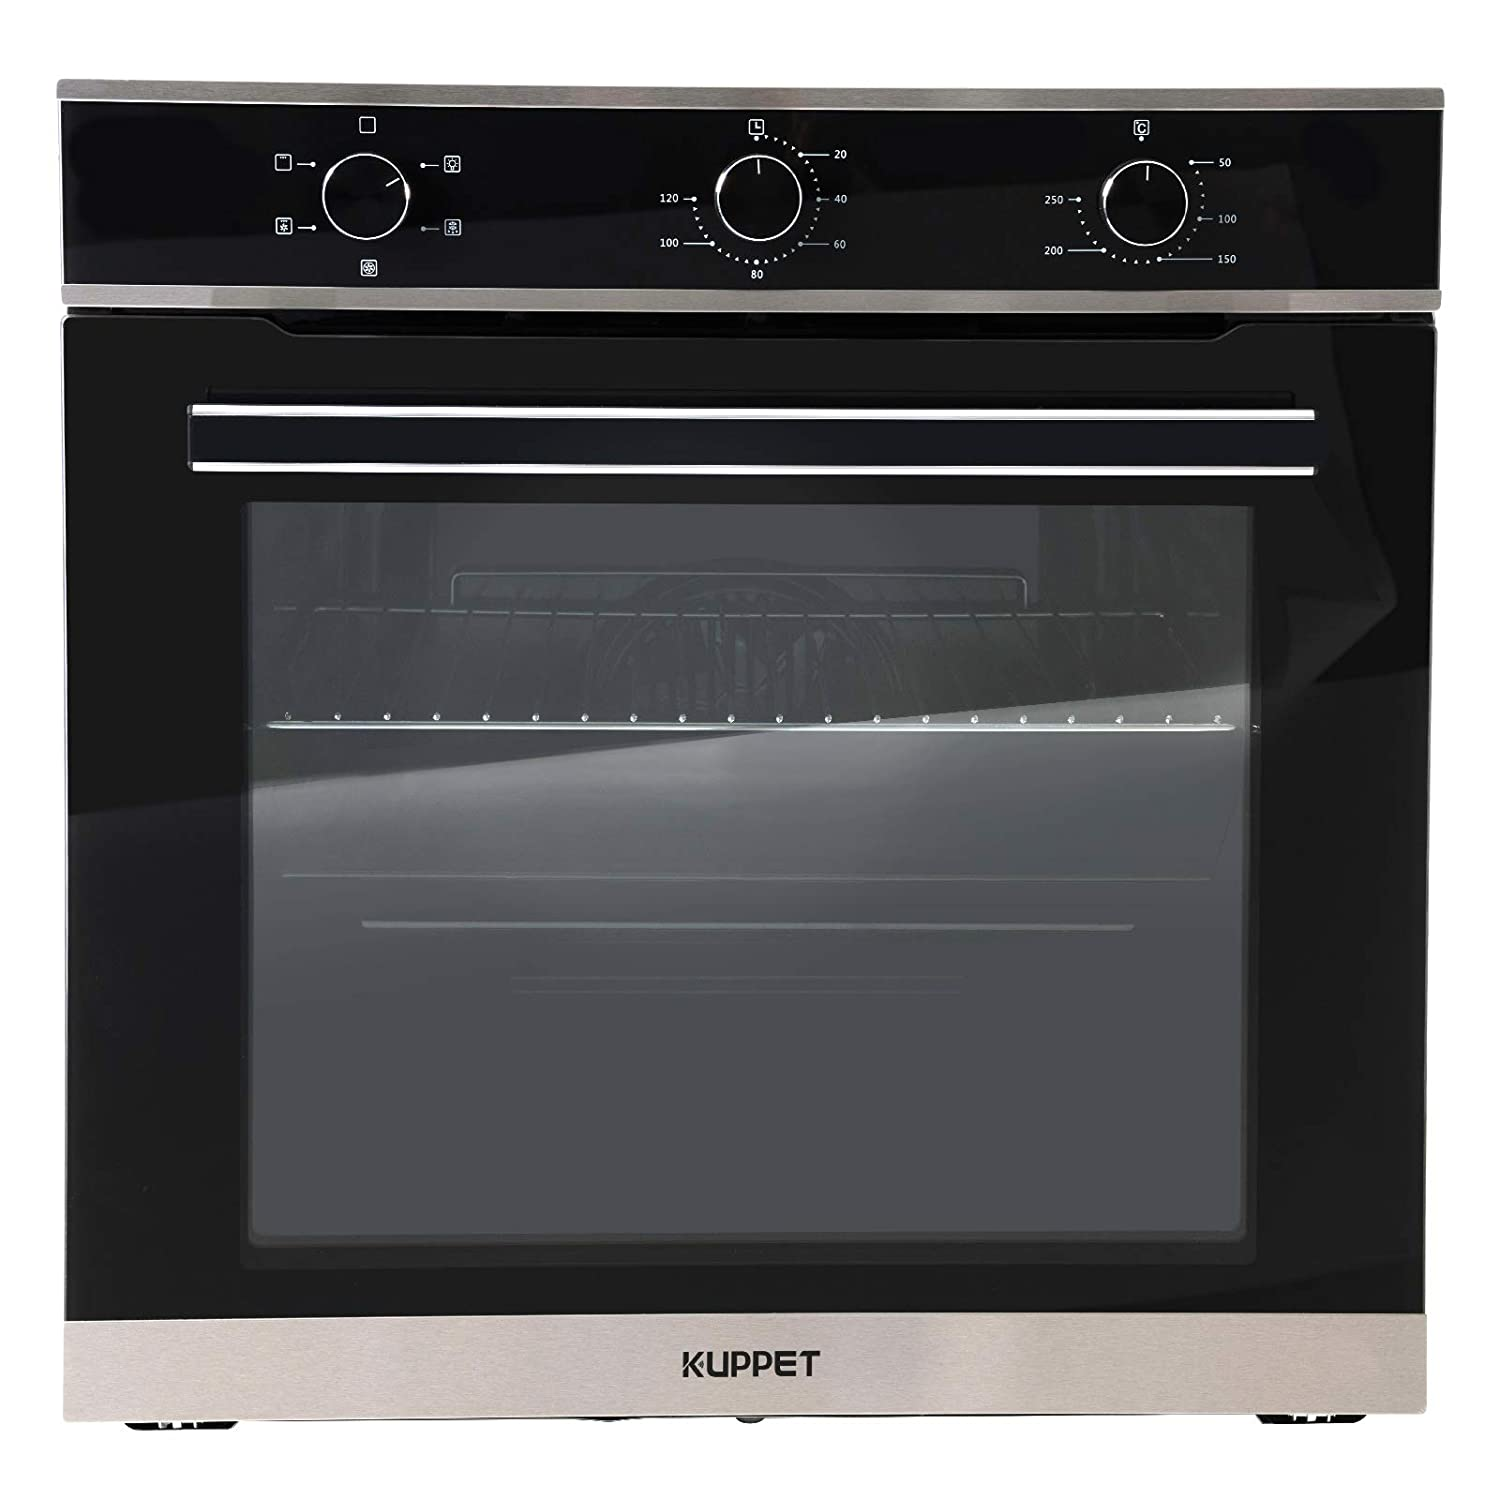 "KUPPET 24"" Electric Single Wall Oven with 5 Functions, Tempered Glass, Push Button Controls, Built-In or Under-Couter, Faster Cooking Convection E750200-H1"